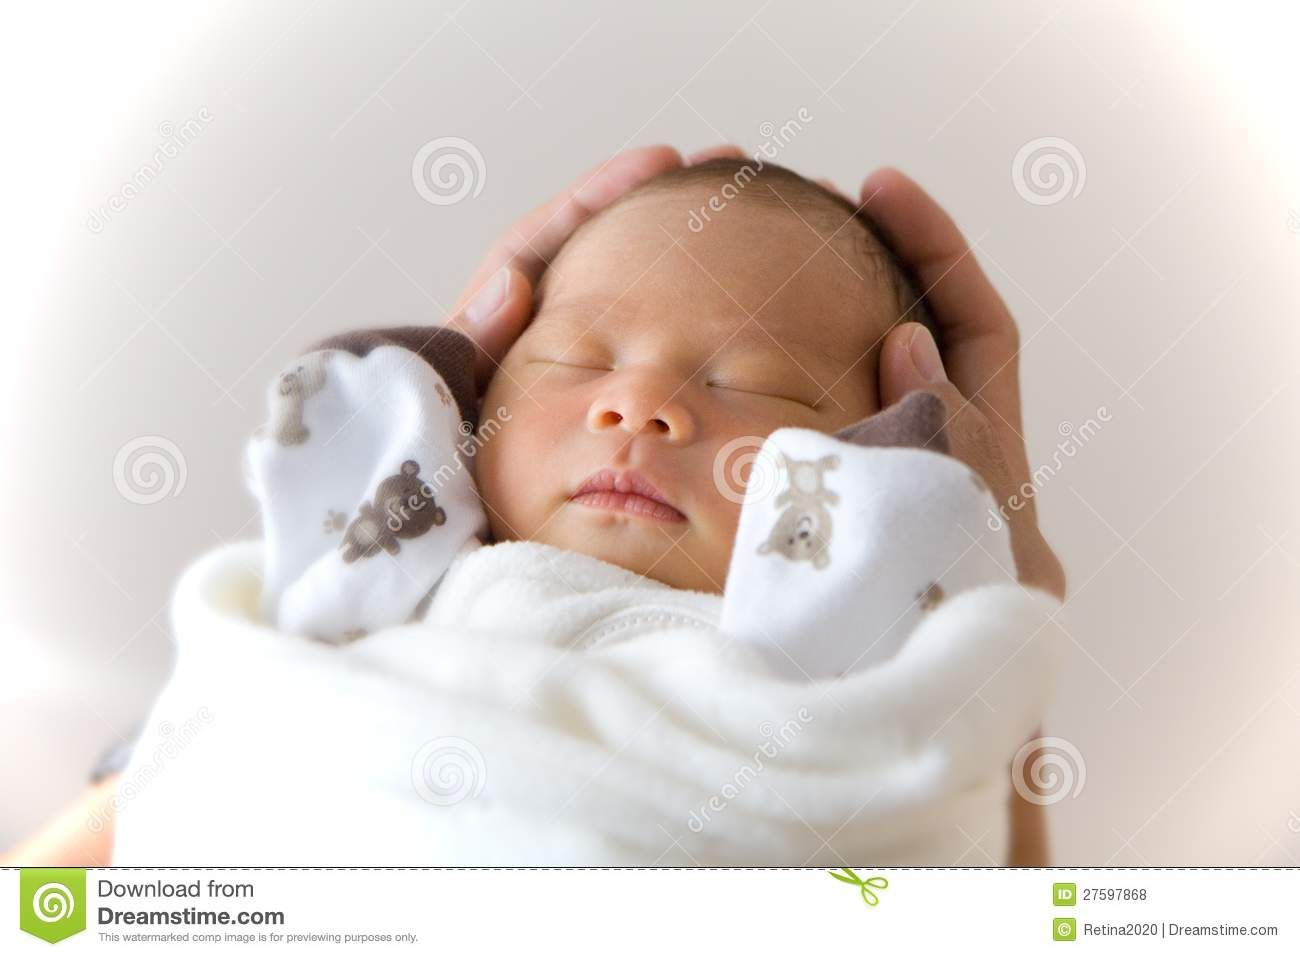 New Born Baby Images Free Download